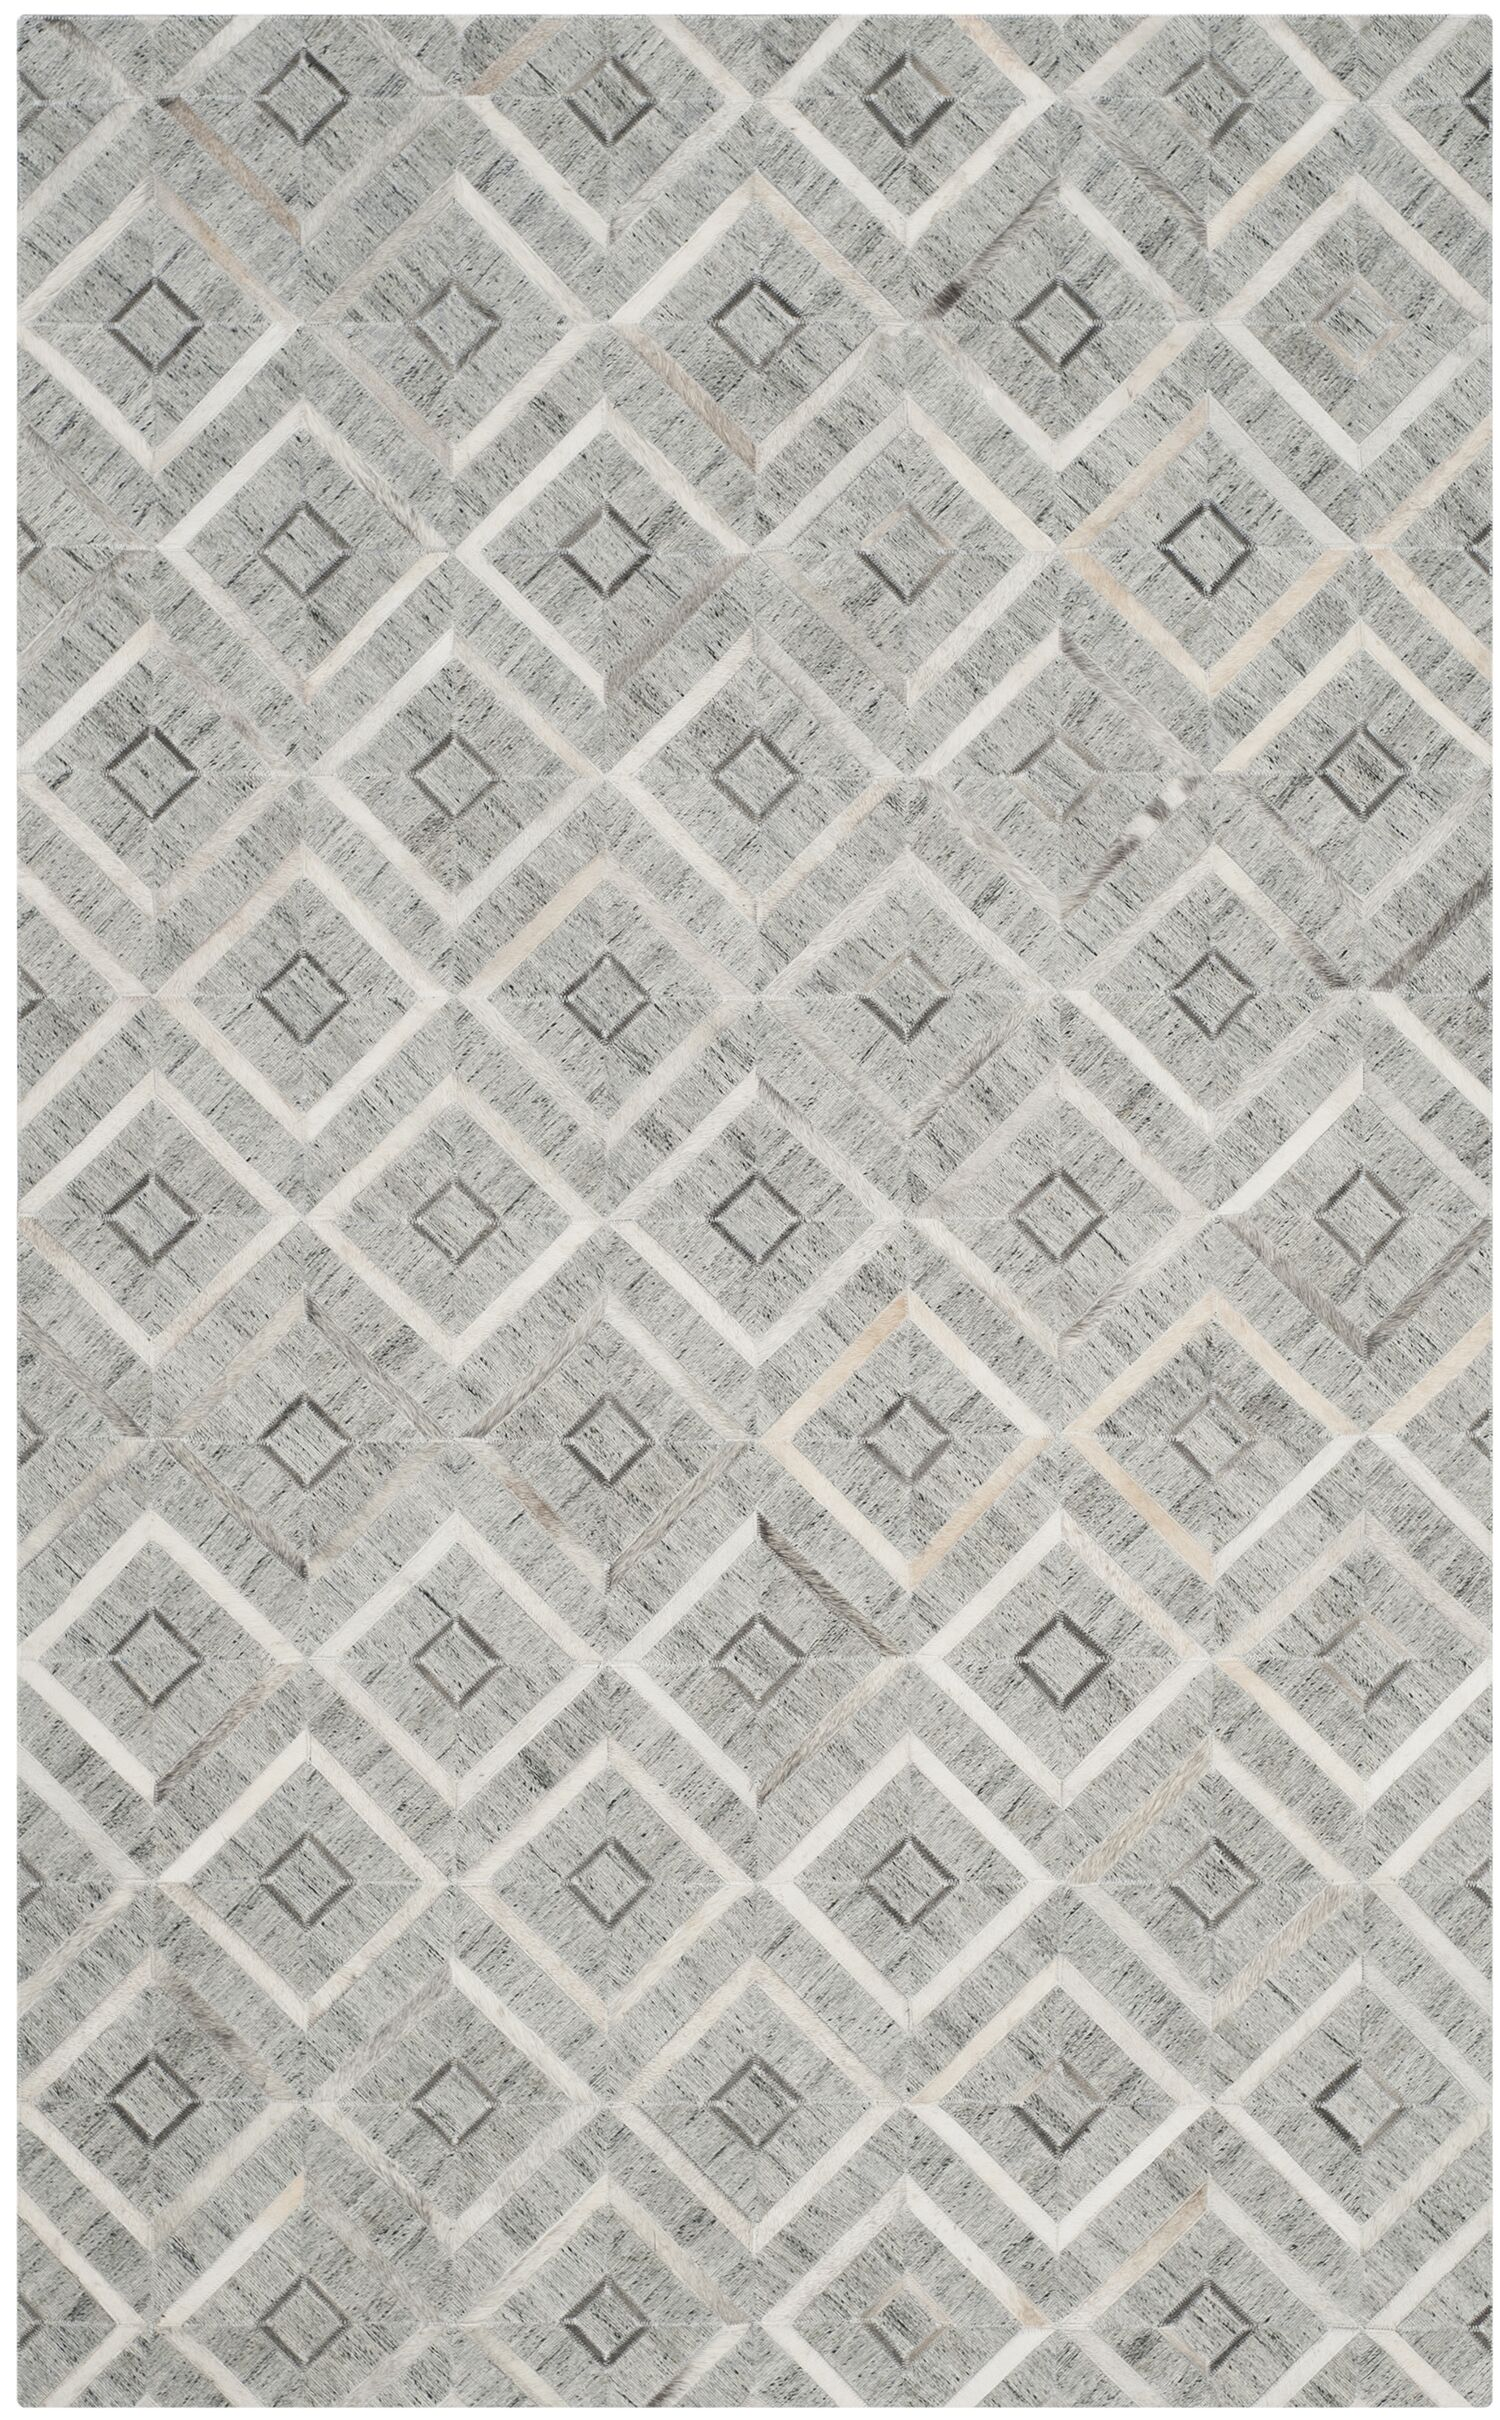 Sevastopol Hand-Woven Ivory/Gray Area Rug Rug Size: Rectangle 3' x 5'